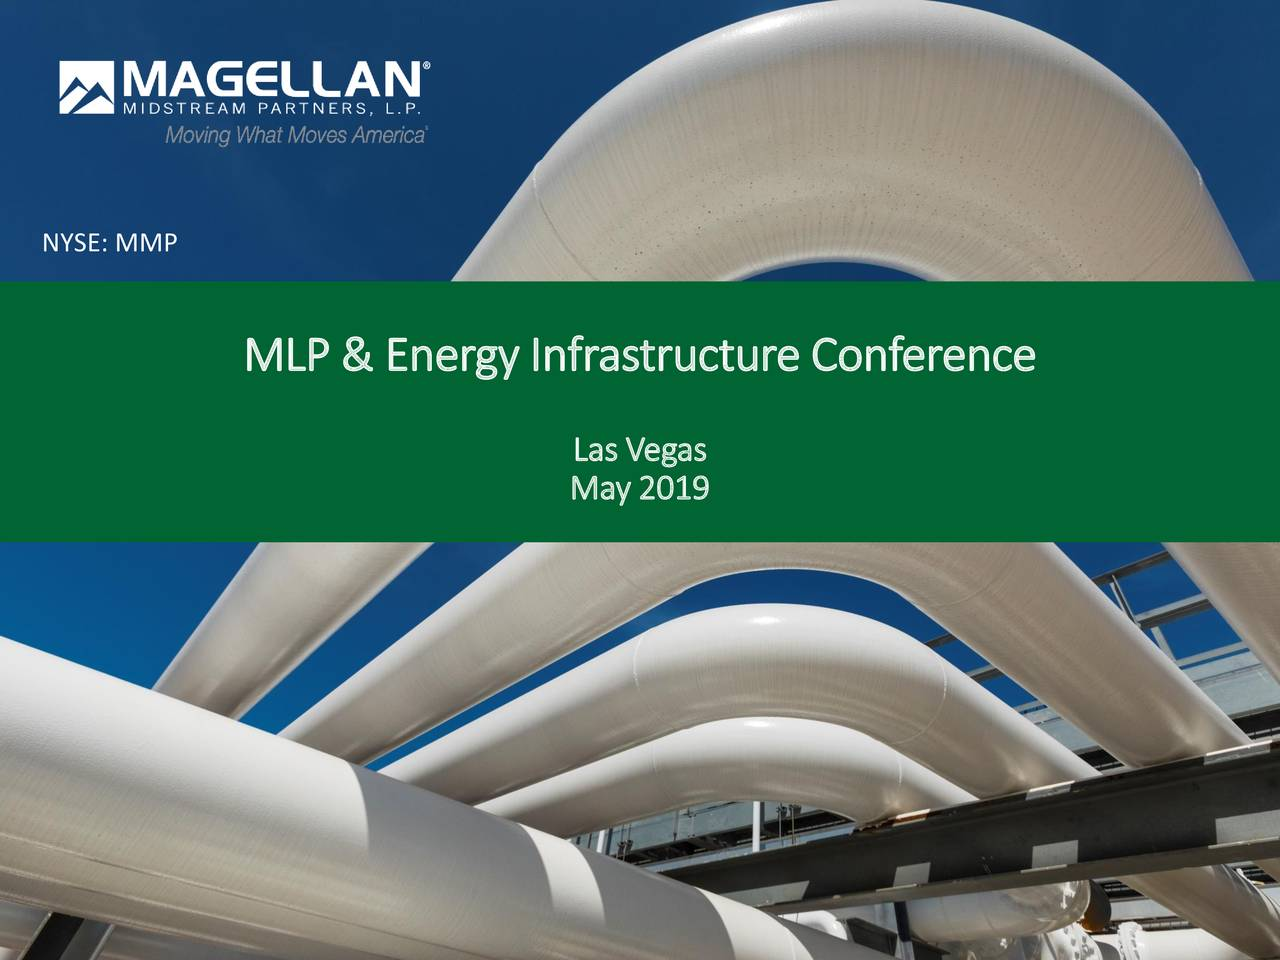 Magellan Midstream Partners (MMP) Presents At MLP & Energy Infrastructure Conference - Slideshow